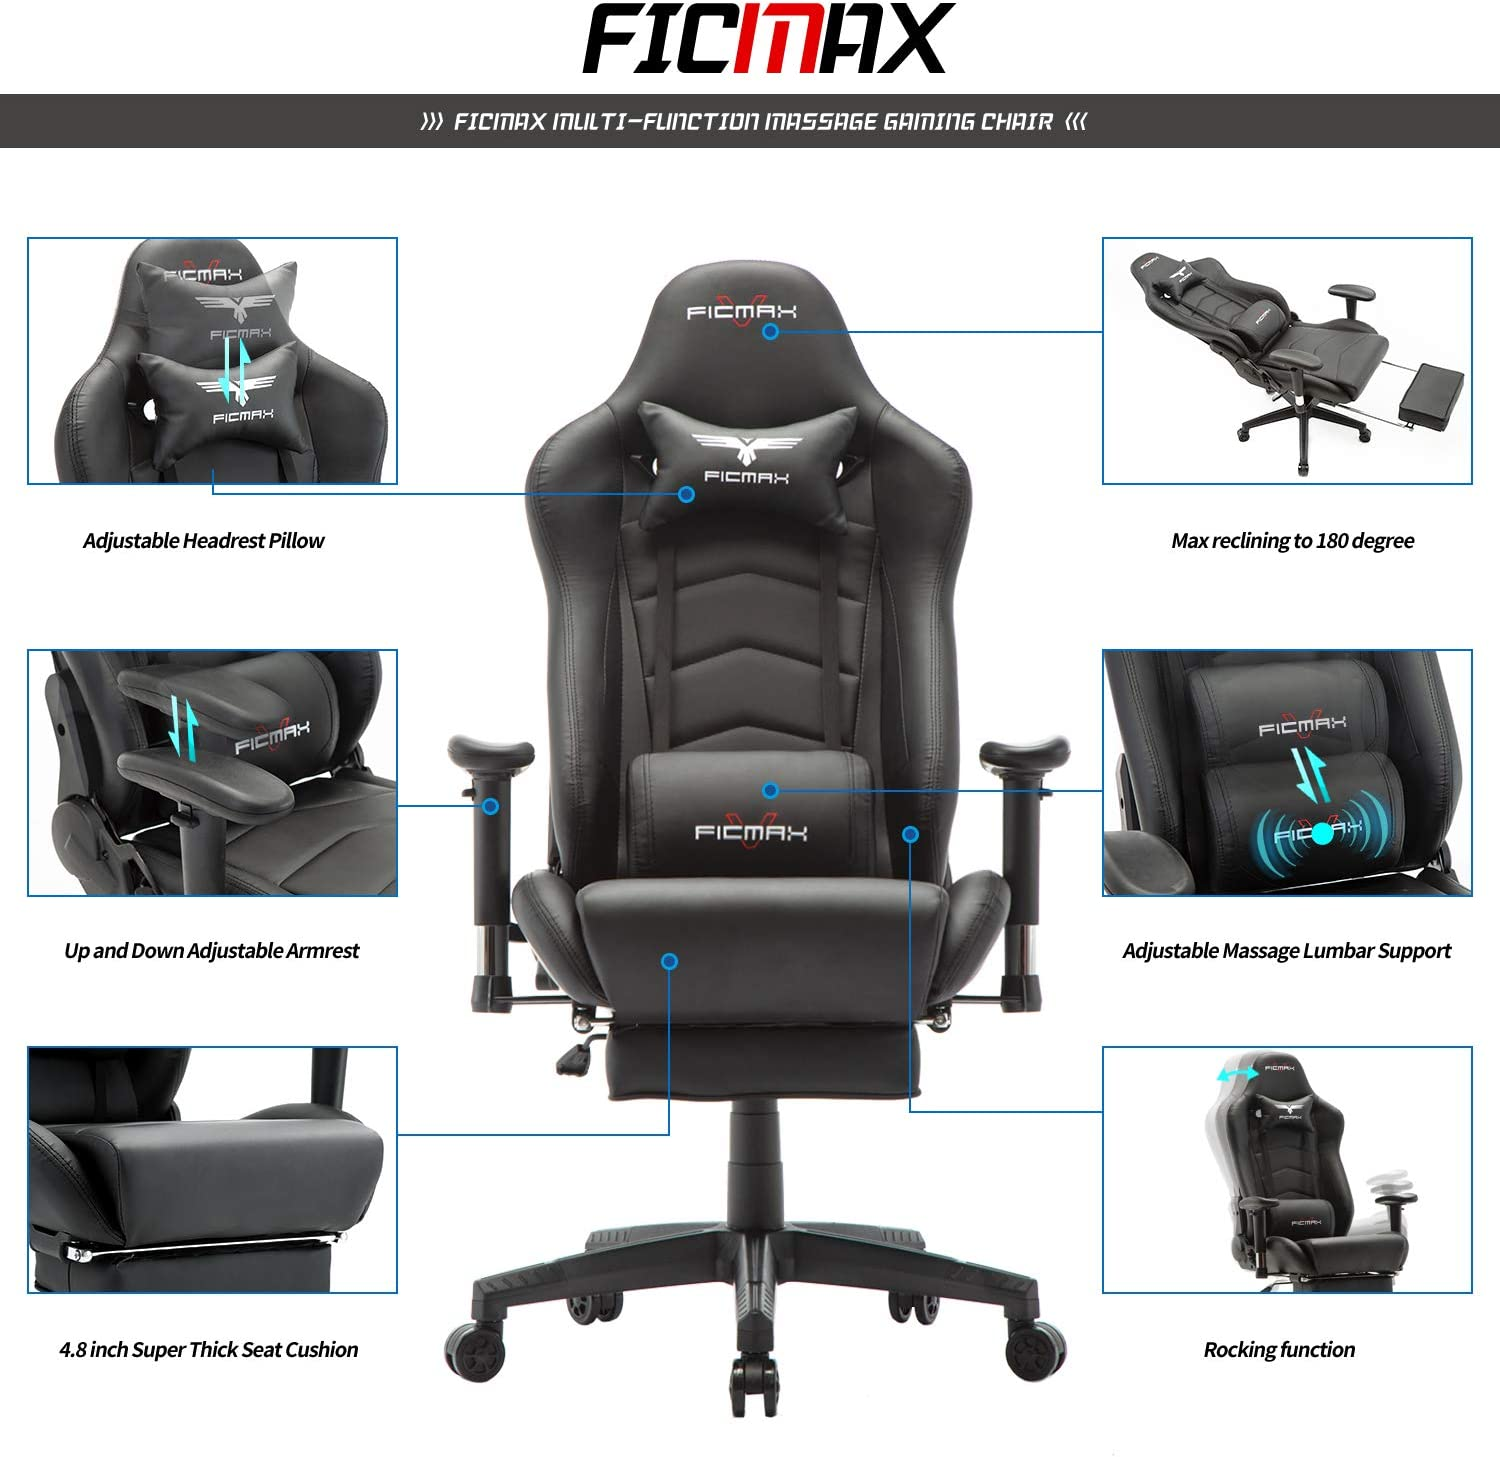 Ergonomic Ficmax Gaming Chair For Programmer